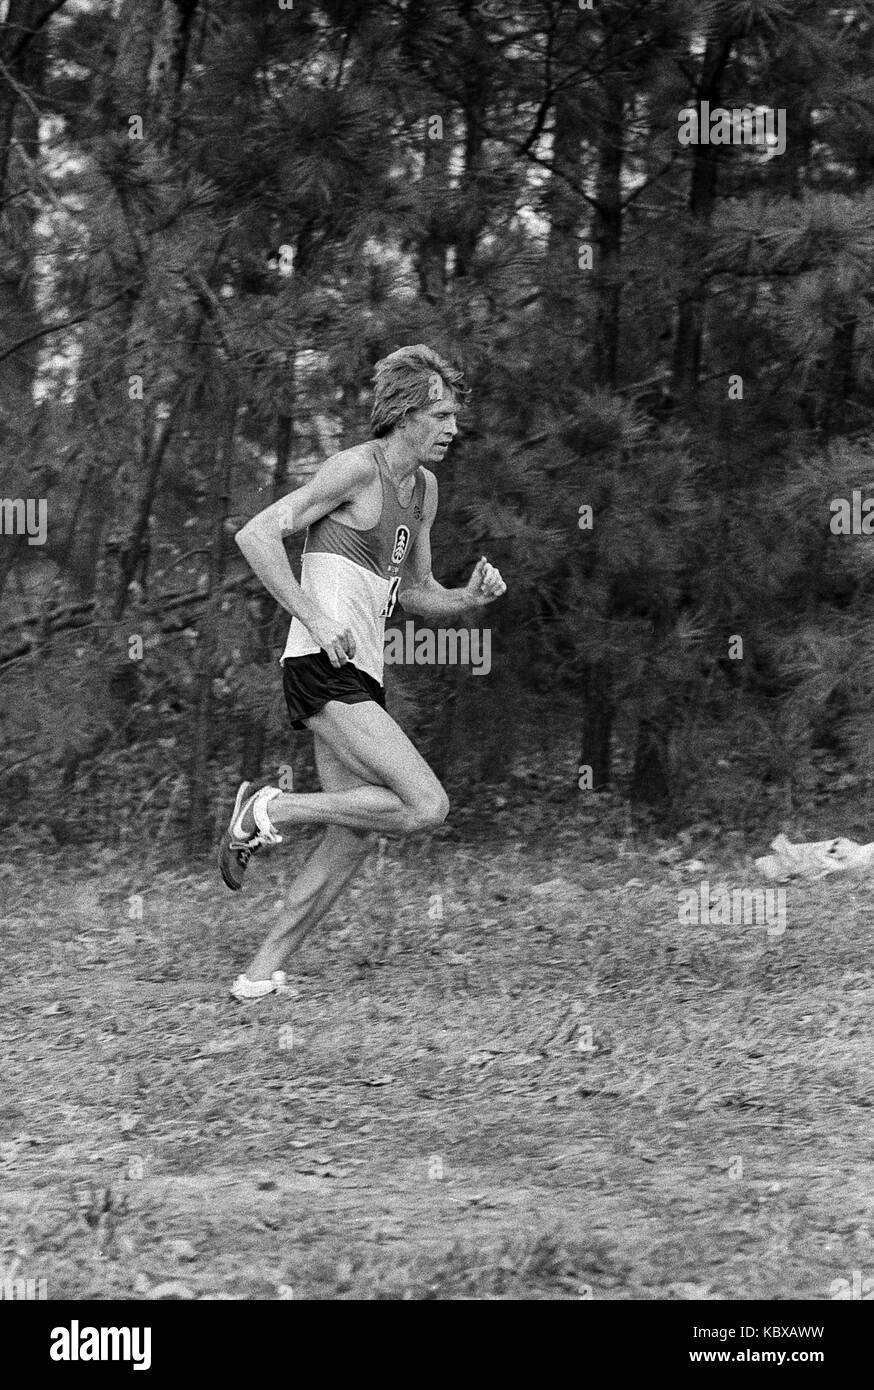 Runner  competing in the 1979 AAU Cross Country Championships. - Stock Image